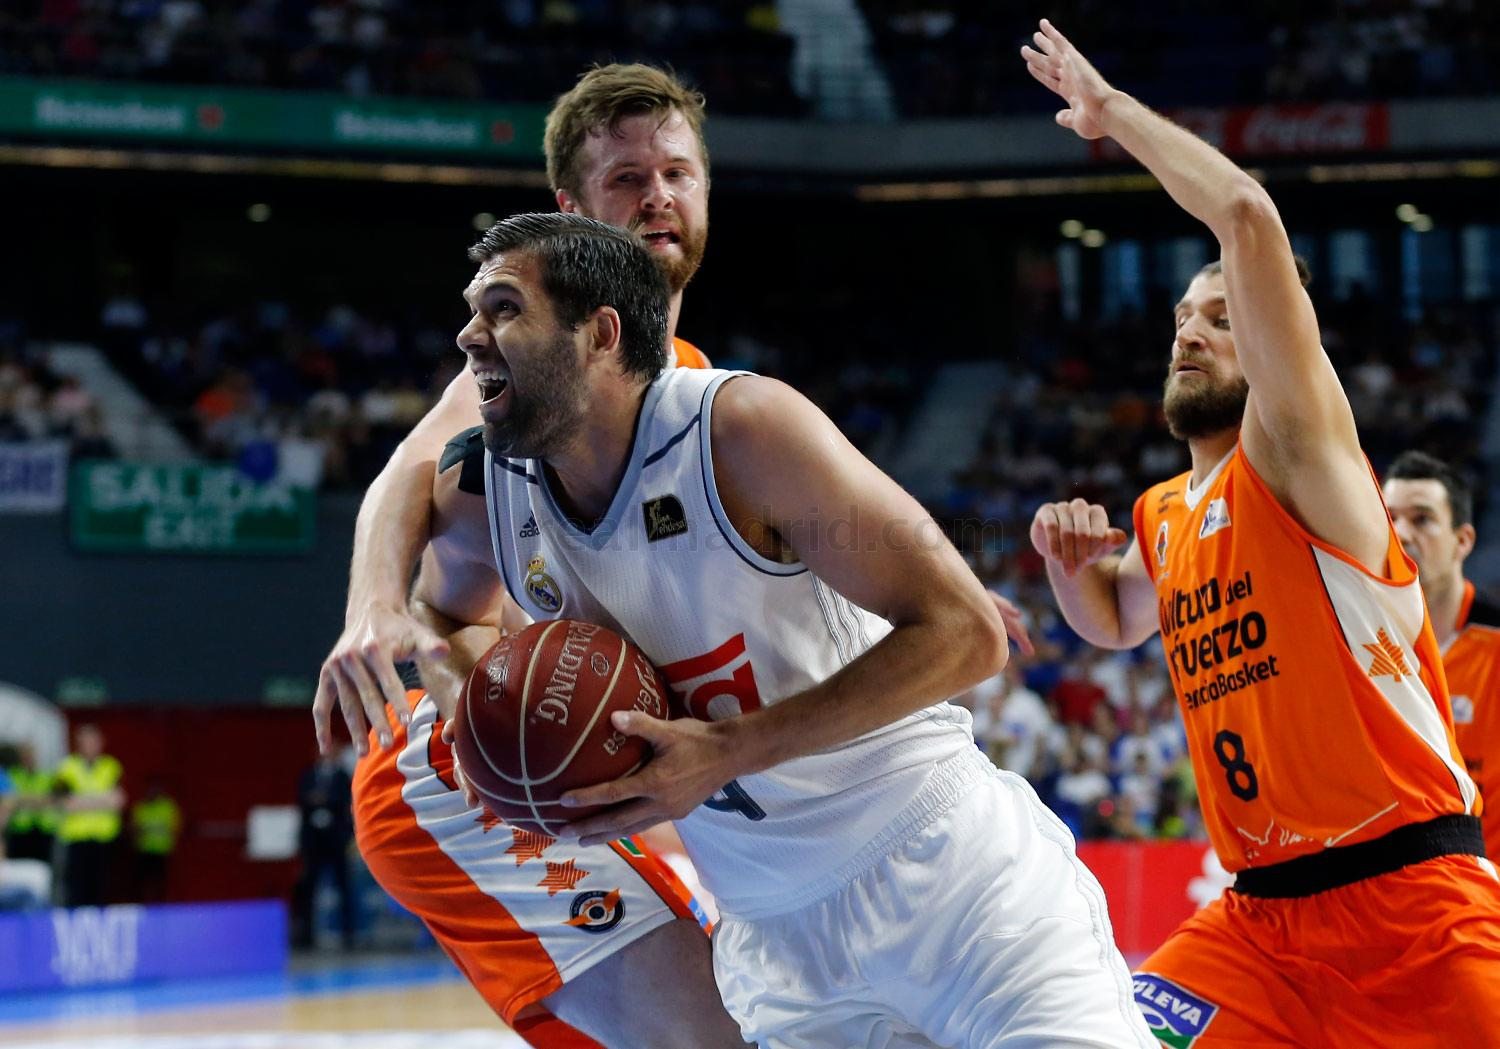 Real Madrid - Real Madrid - Valencia Basket - 04-06-2016